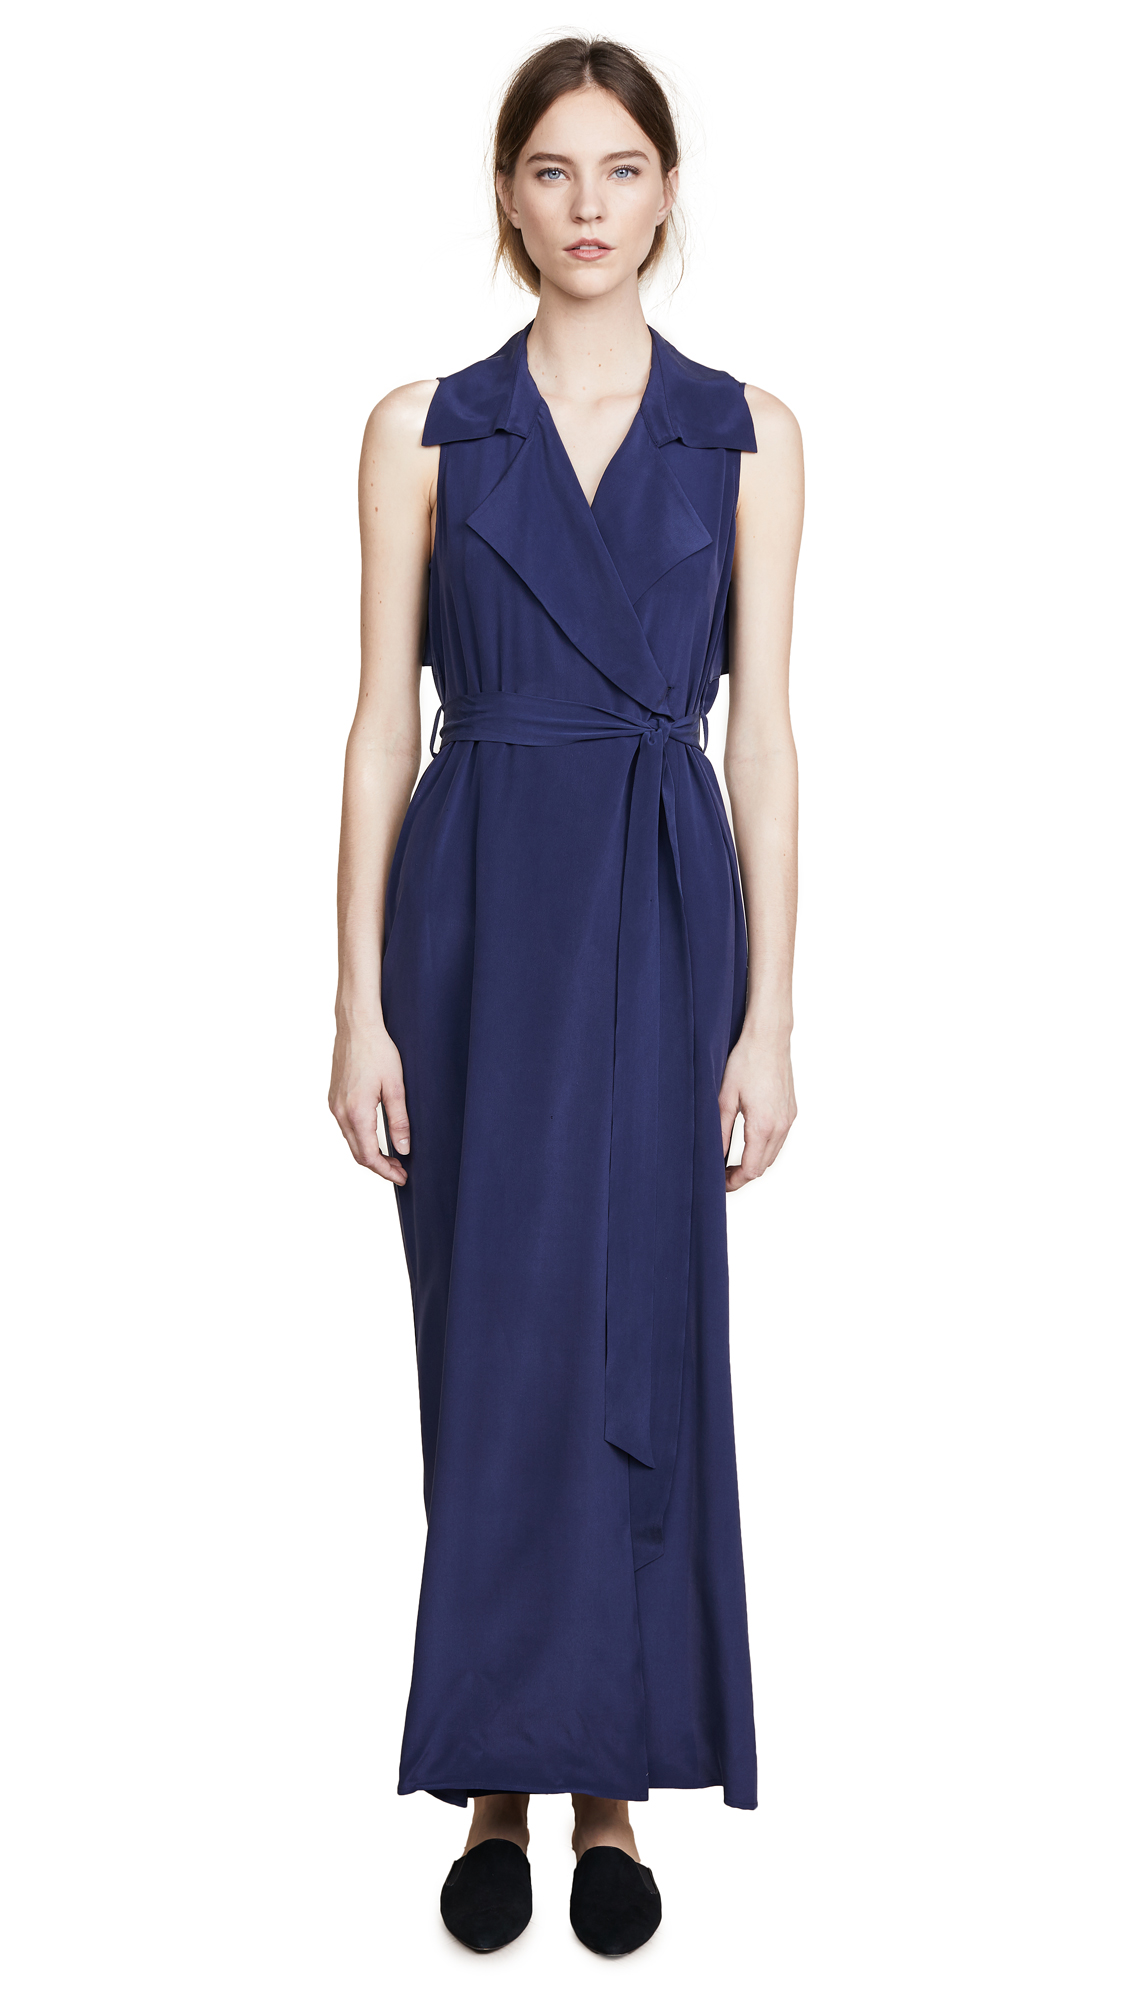 L'AGENCE Maya Wrap Dress In Navy